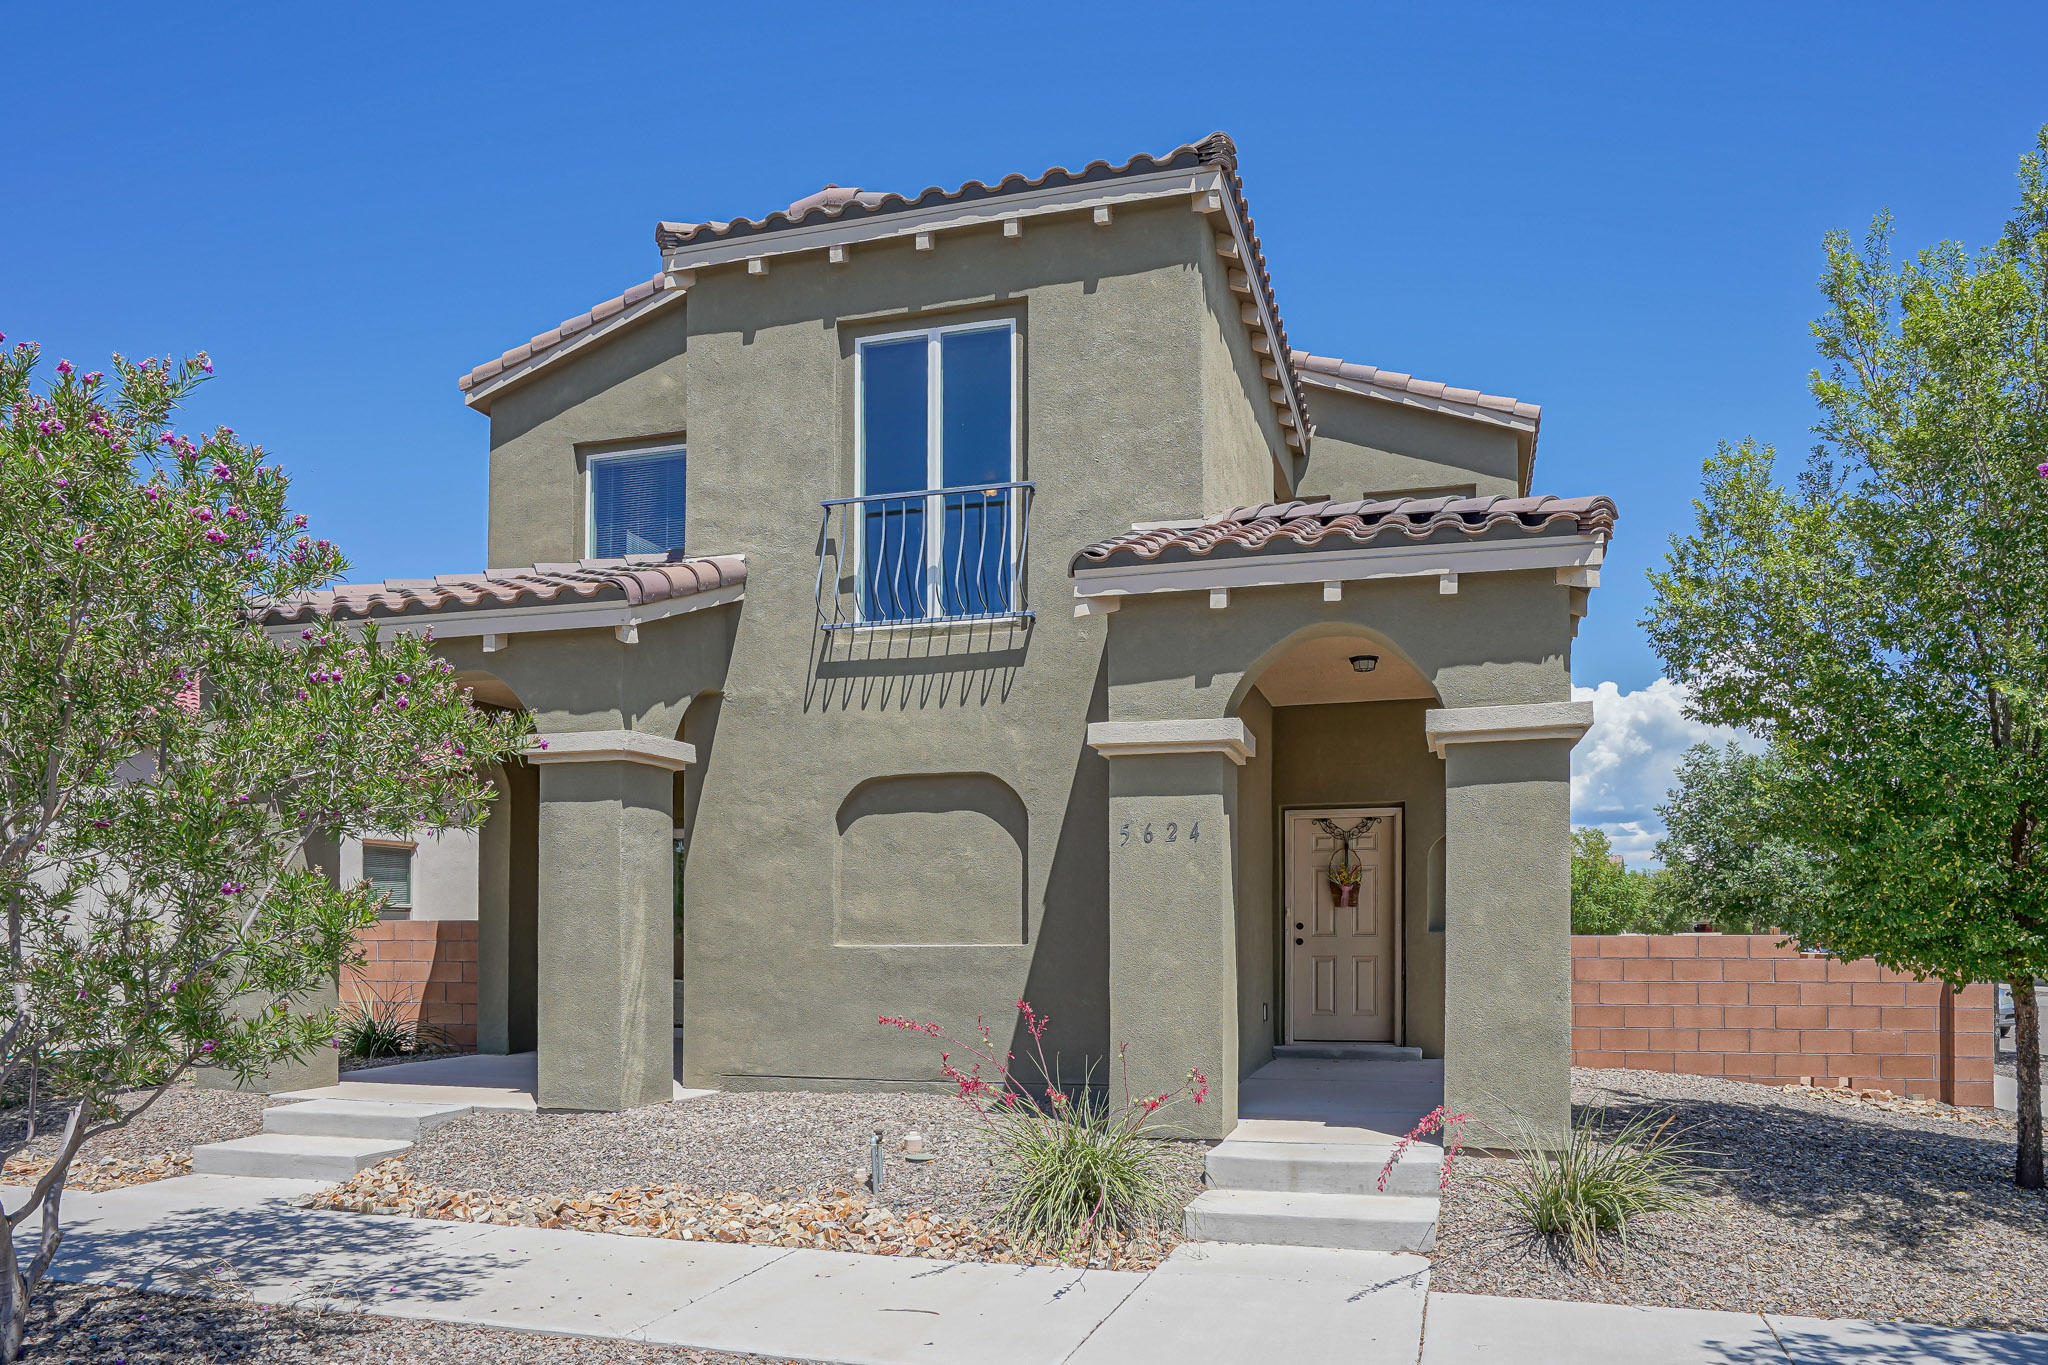 Enjoy a sweet, quiet community in Mesa Del Sol just a skip away from the busy city! Relax at the sparkling community pool or BBQ at the beautiful park. This Raylee Devotion Model is rated Silver Green for excellent energy bills and a HERS score of 54. The corner lot gives extra privacy in your 2 separate patios and a lovely balcony with beautiful views from the master bedroom. You'll love the open floor plan with a roomy loft upstairs! The Jack n Jill bathroom opens to one bedroom and into  the hall for guests or easy access. The spacious master has a large bathroom with double vanities and a shower. Plenty of storage space in this home with mostly walk in closets. A few other perks: Tankless water heater, pull outs in the kitchen cabinets and all appliances convey with the home!